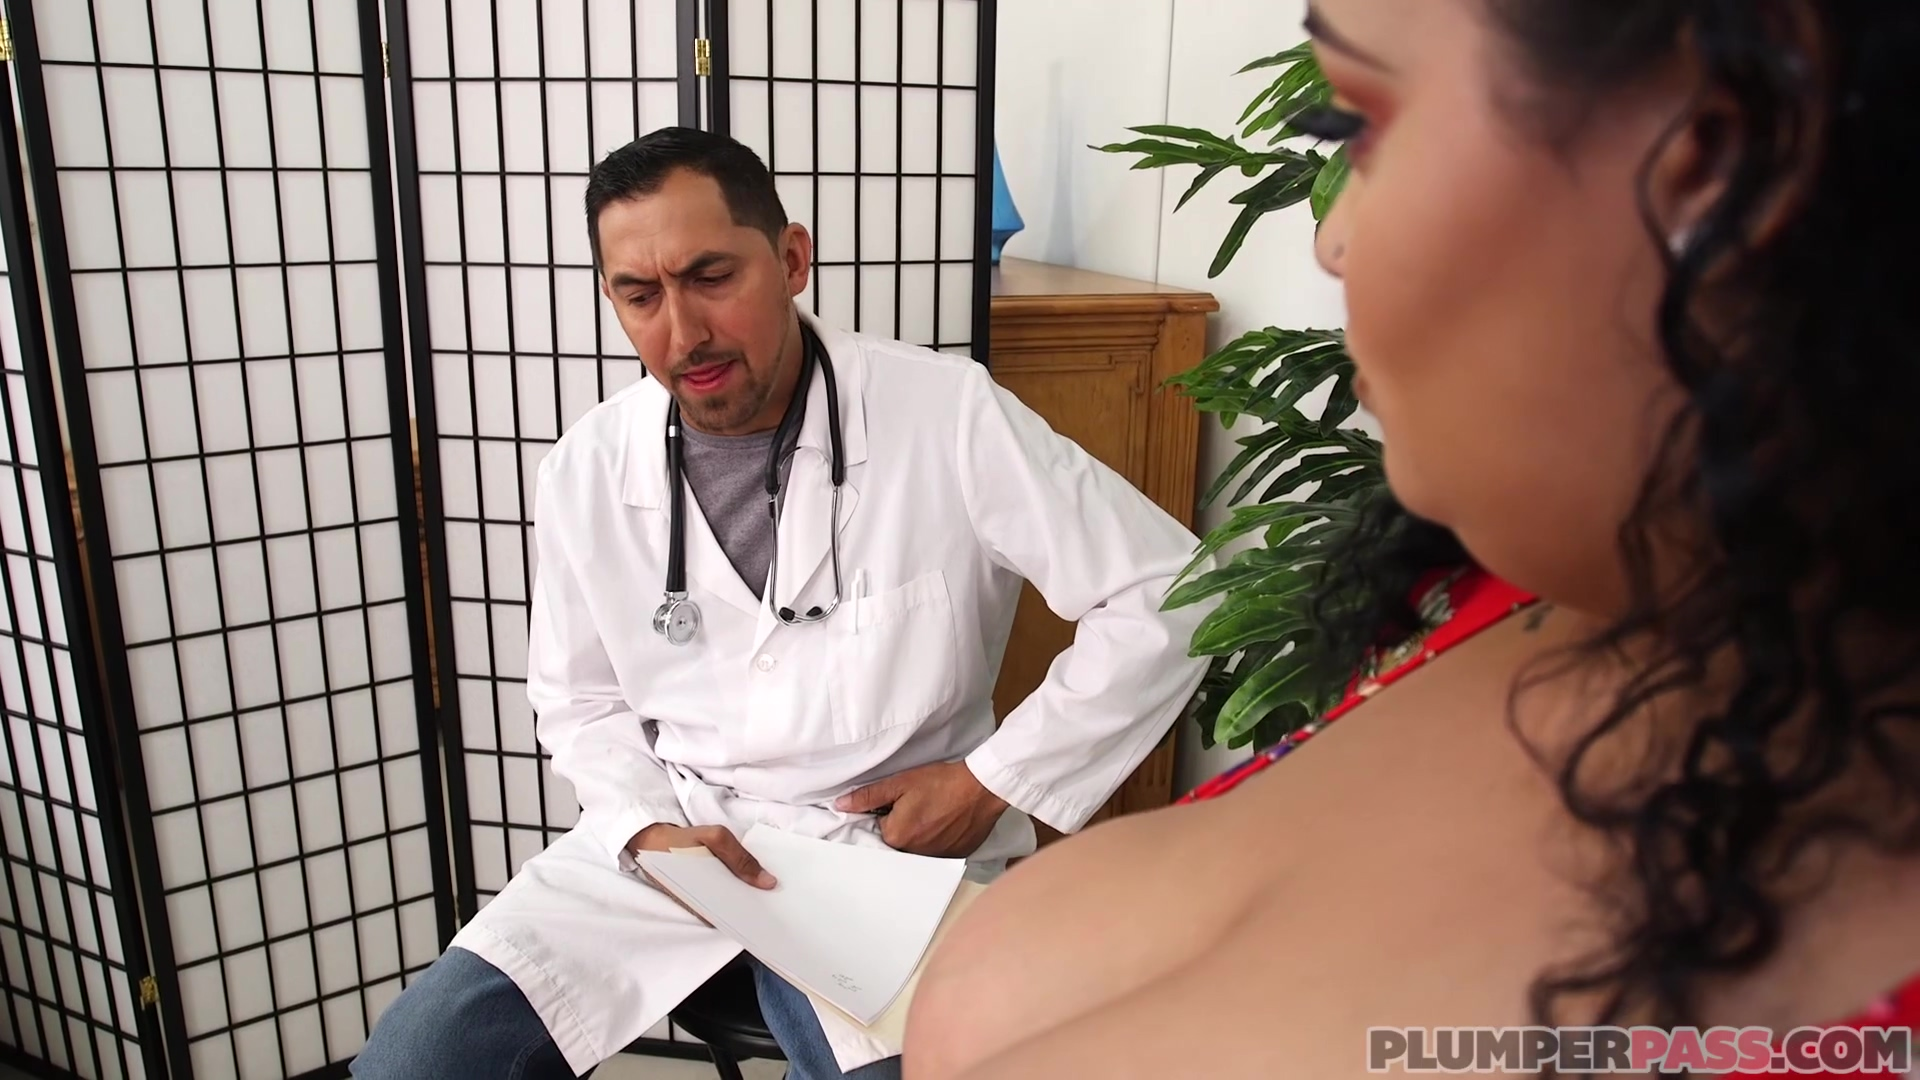 Nirvana Lust - The Horny Patient